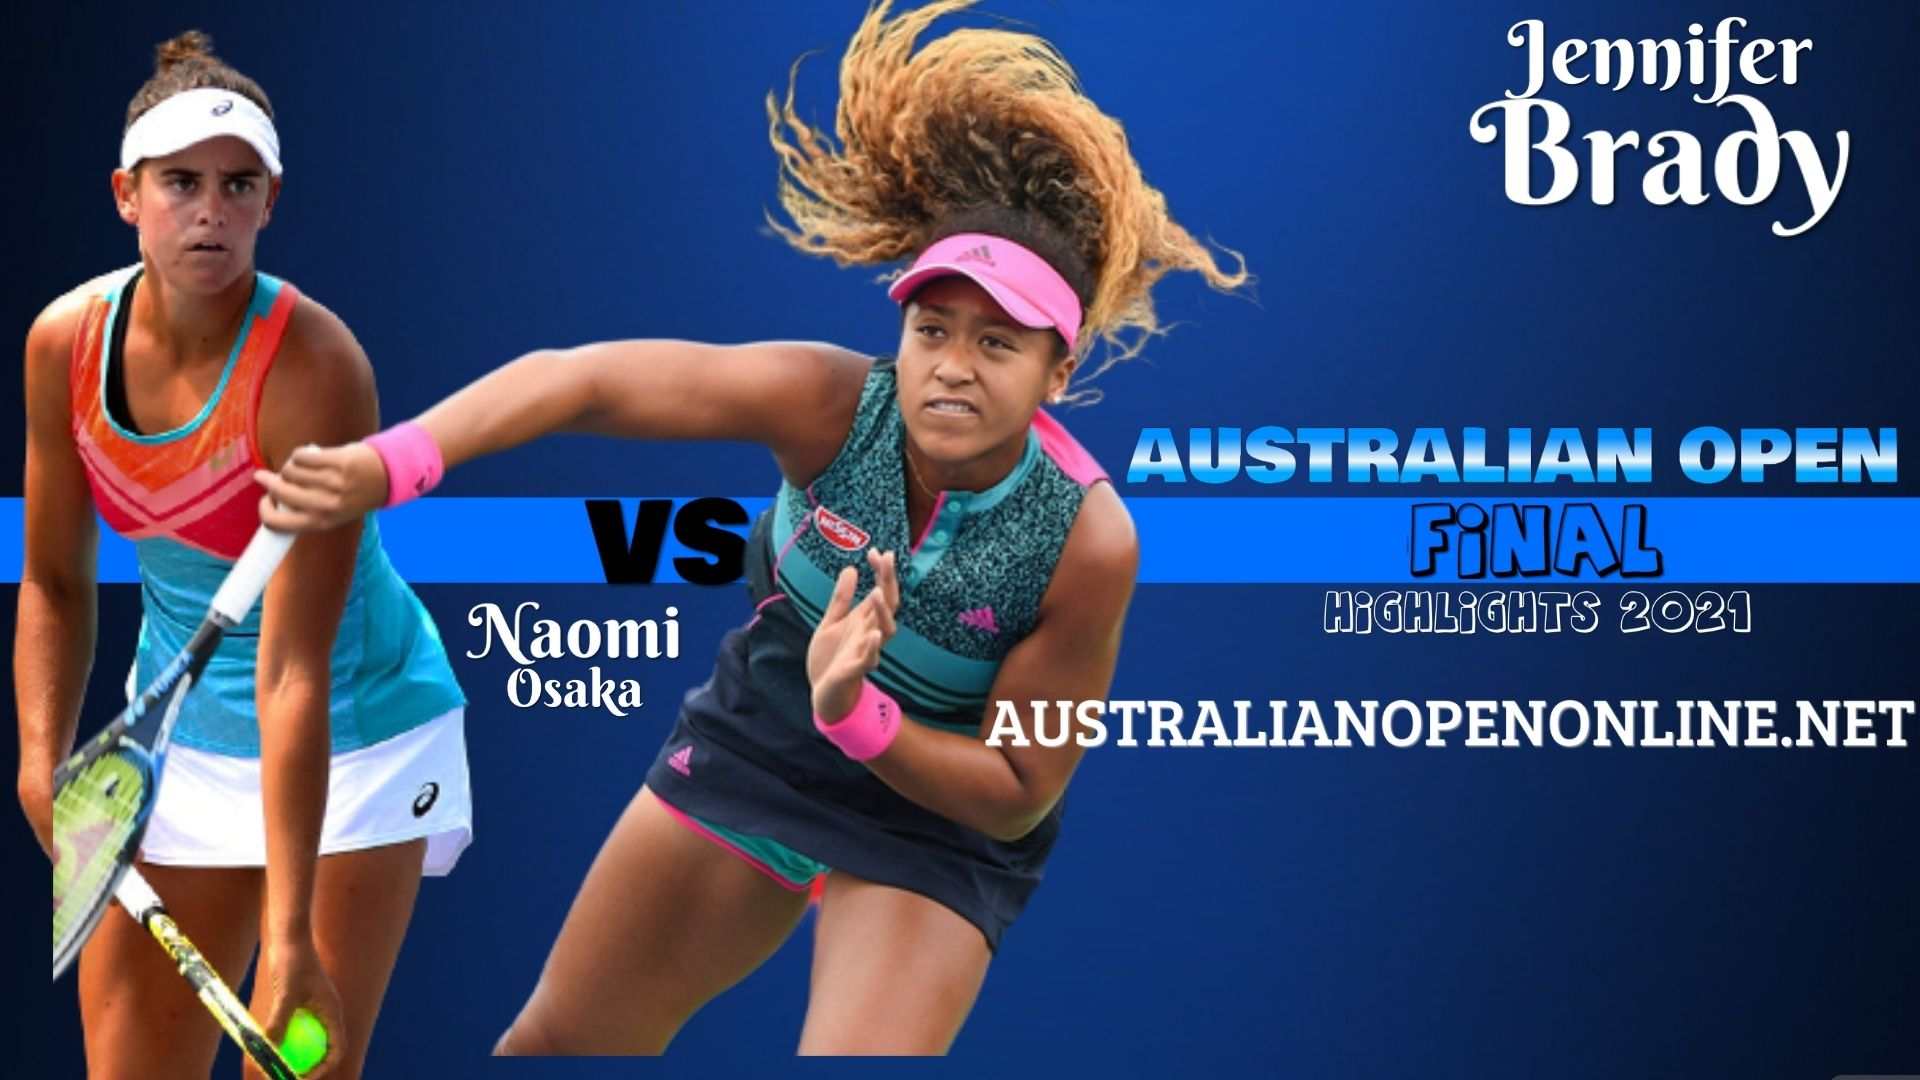 Jennifer Brady Vs Naomi Osaka Final Highlights 2021